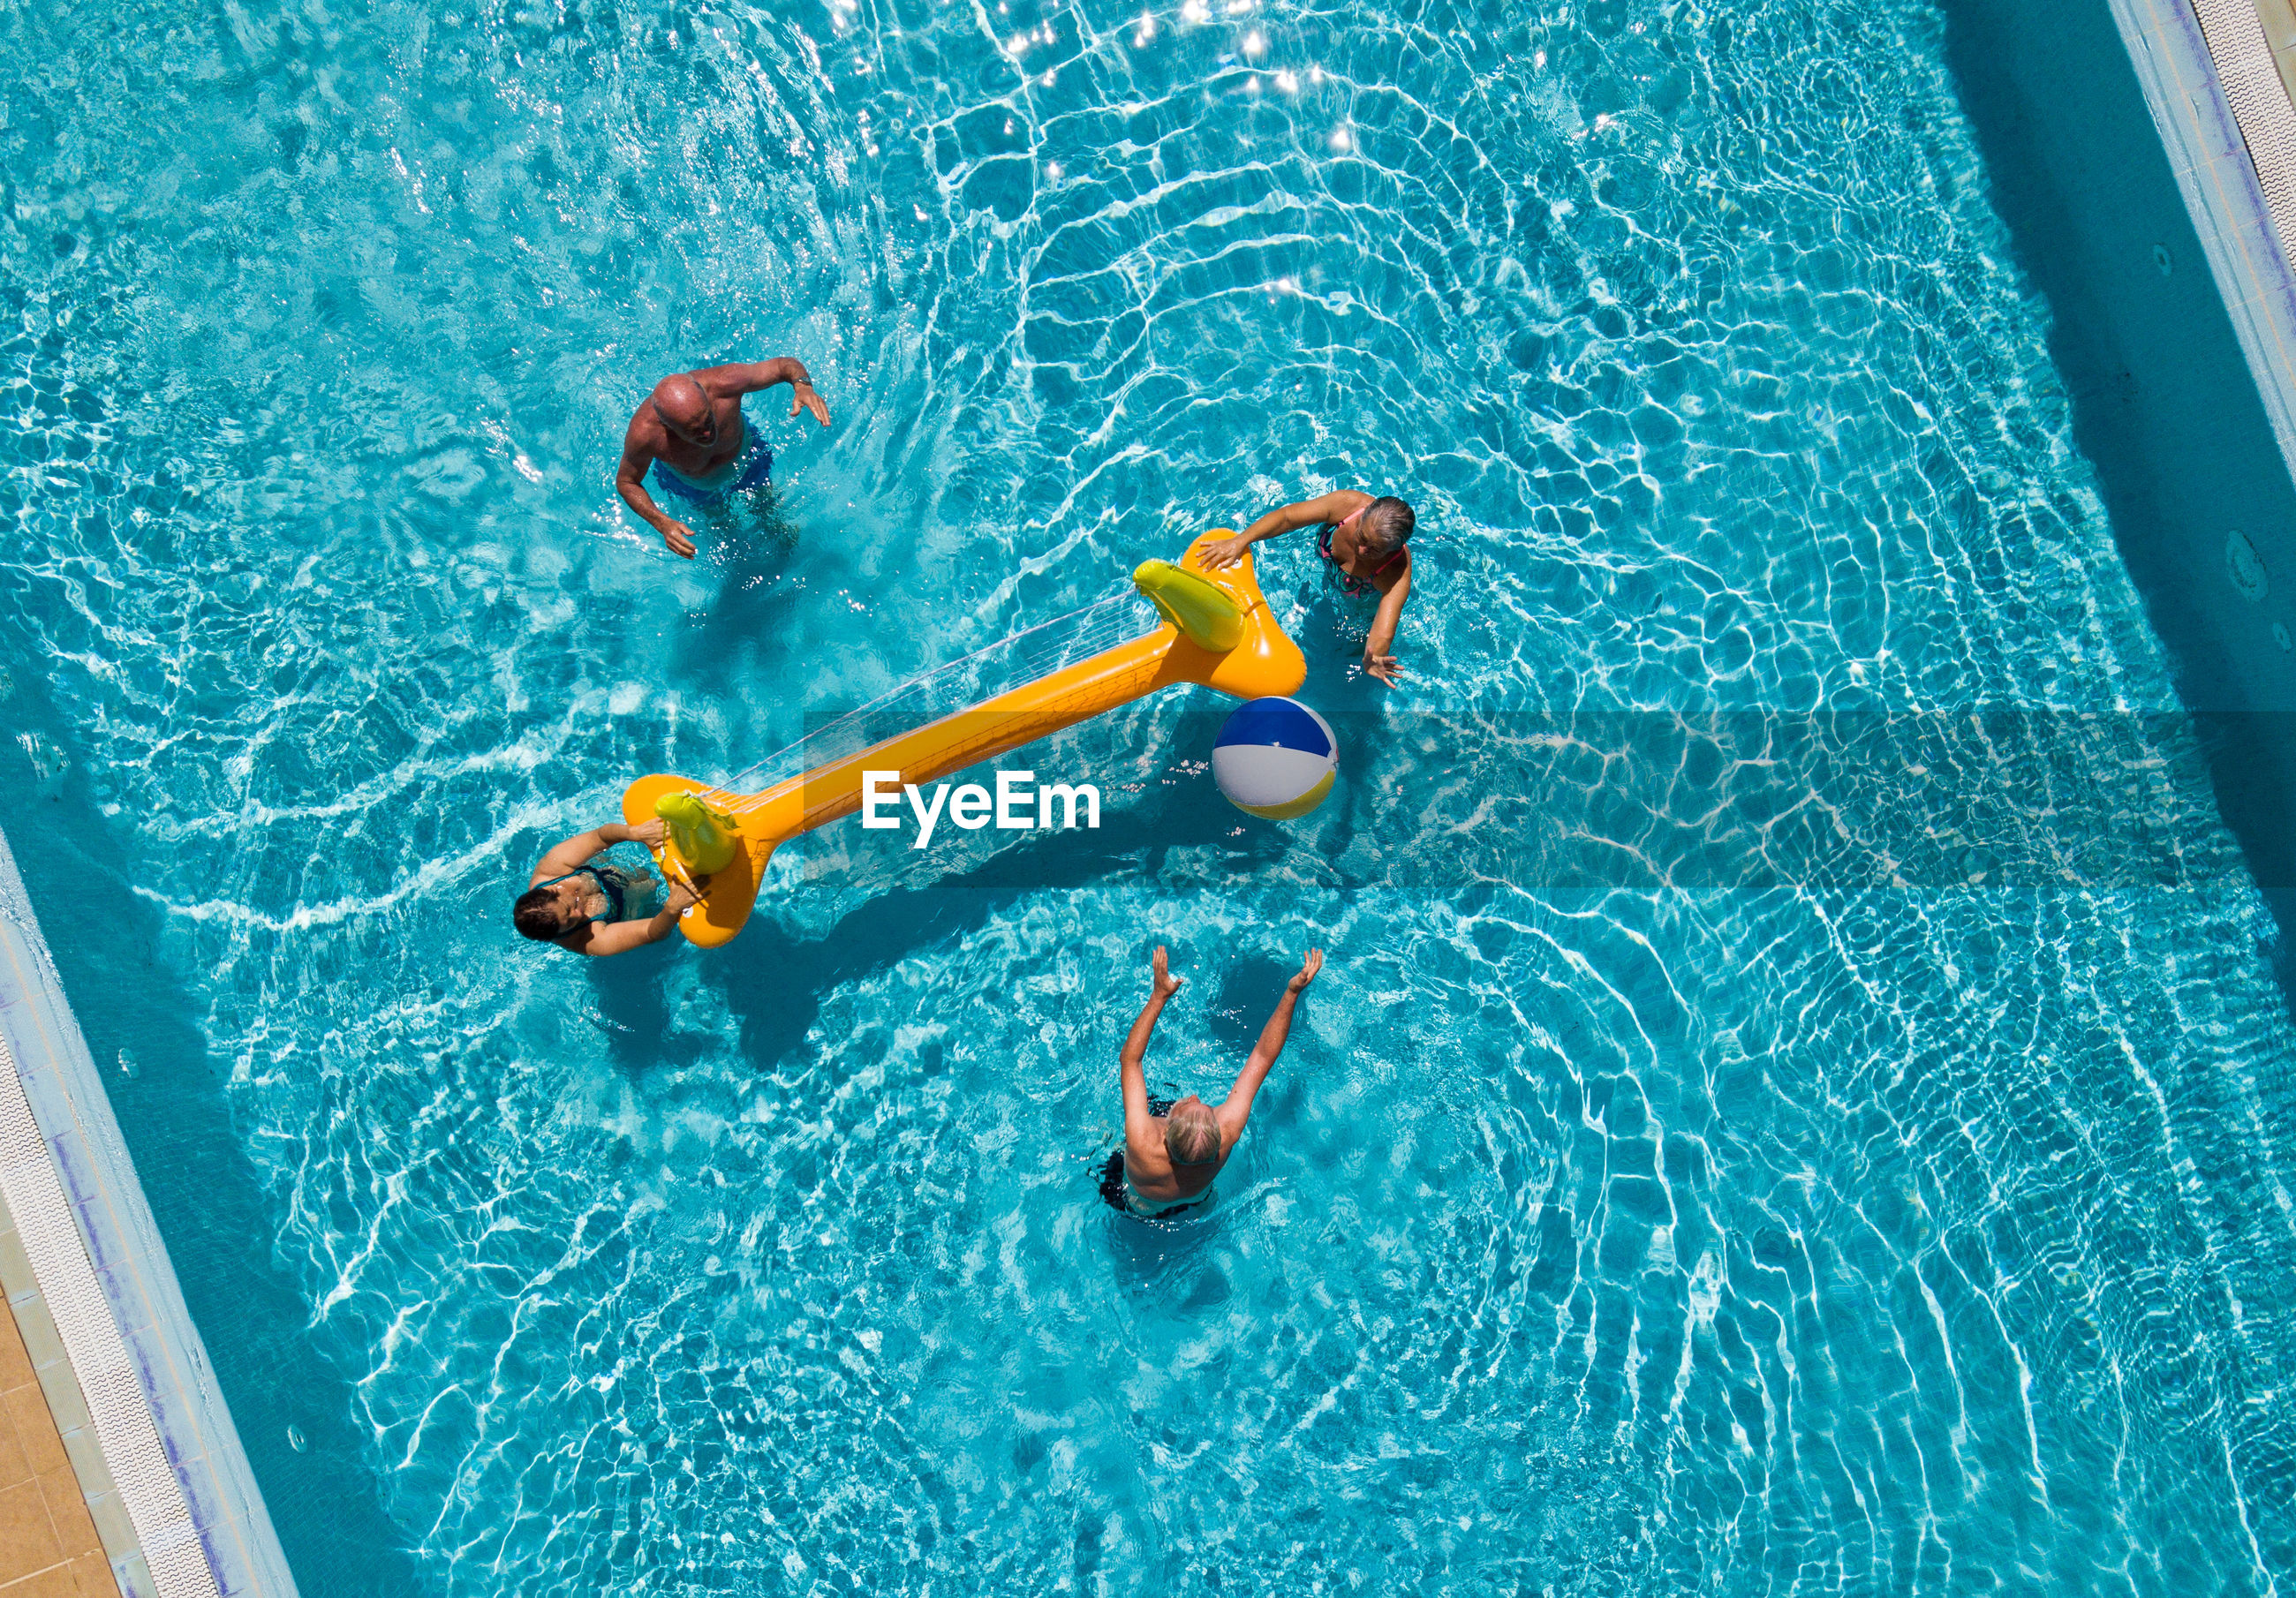 HIGH ANGLE VIEW OF SCUBA SWIMMING IN POOL